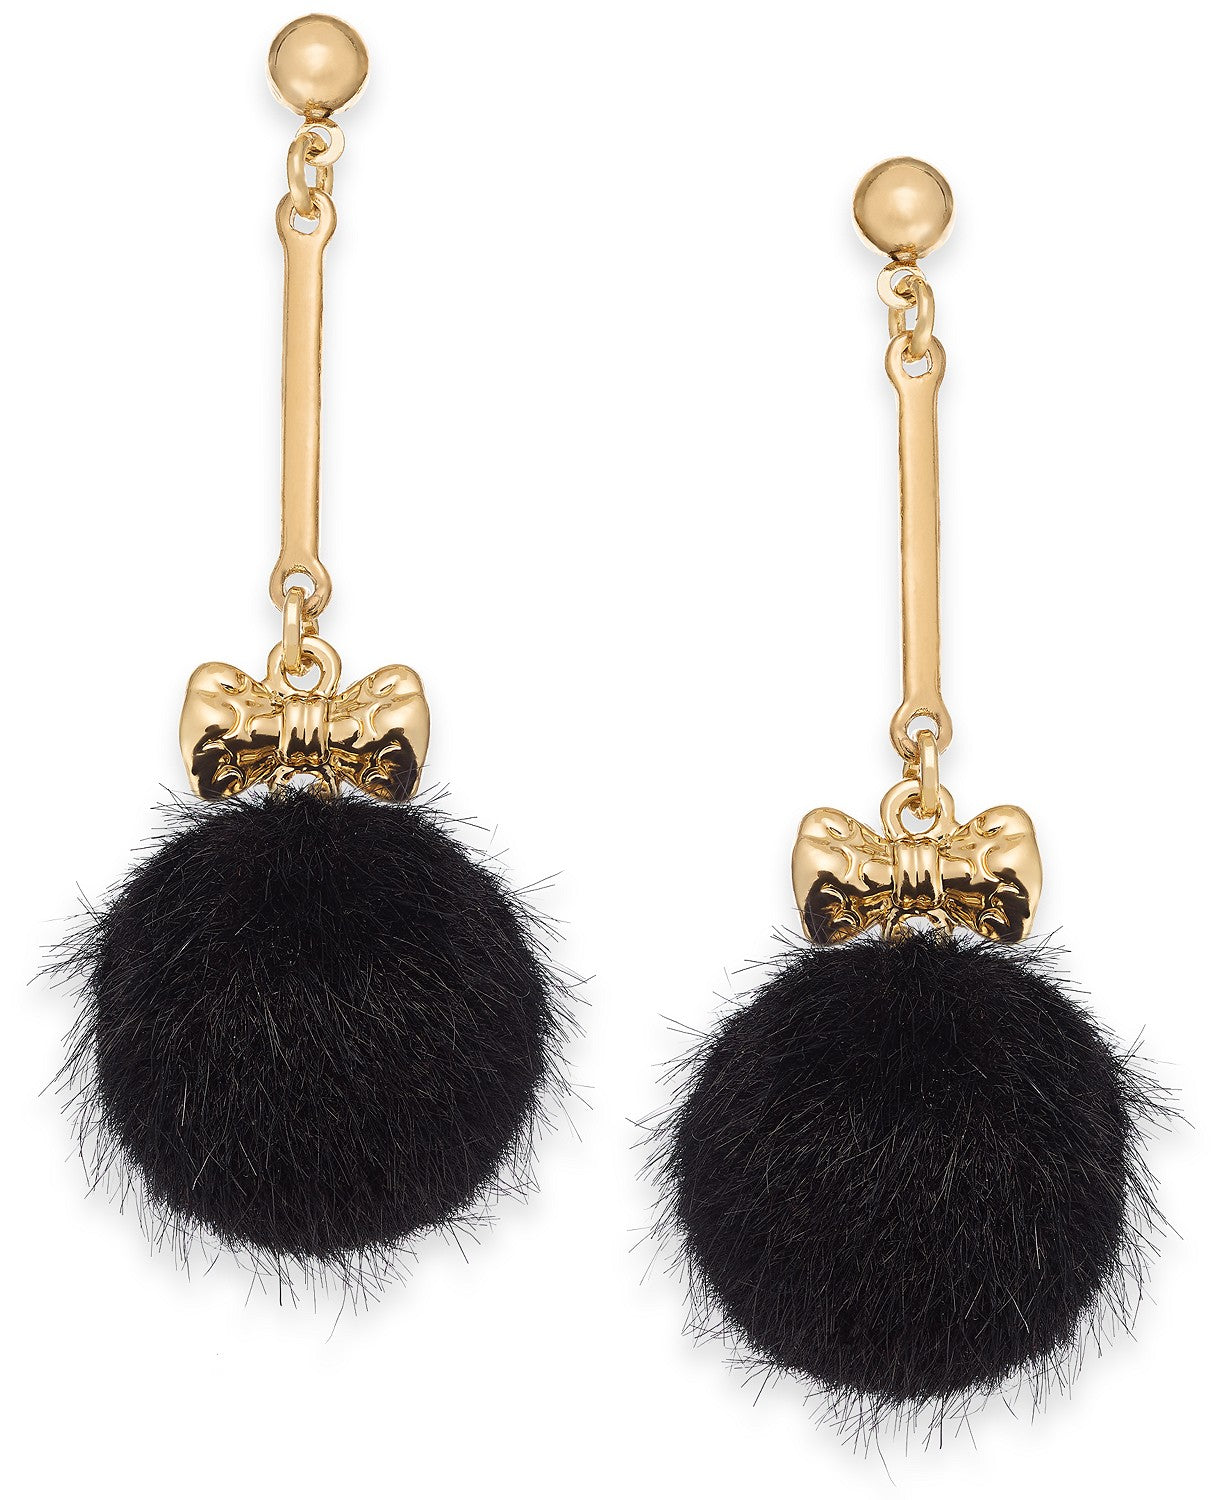 INC International Concepts GoldTone Bow Faux Fur Ball Black